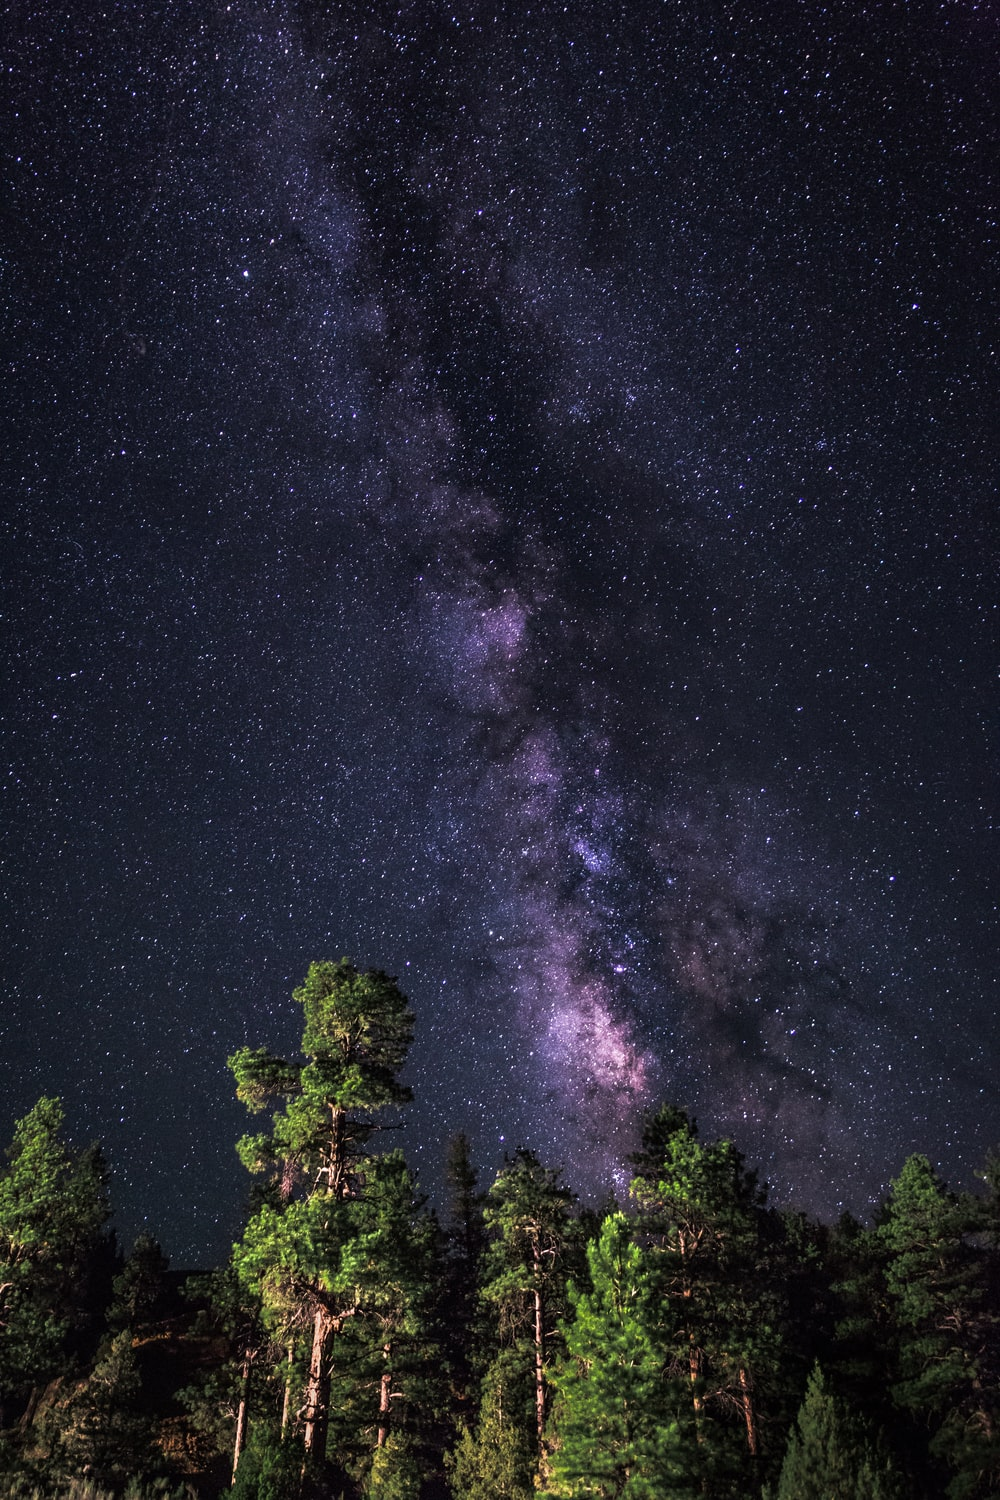 milkyway on sky over trees